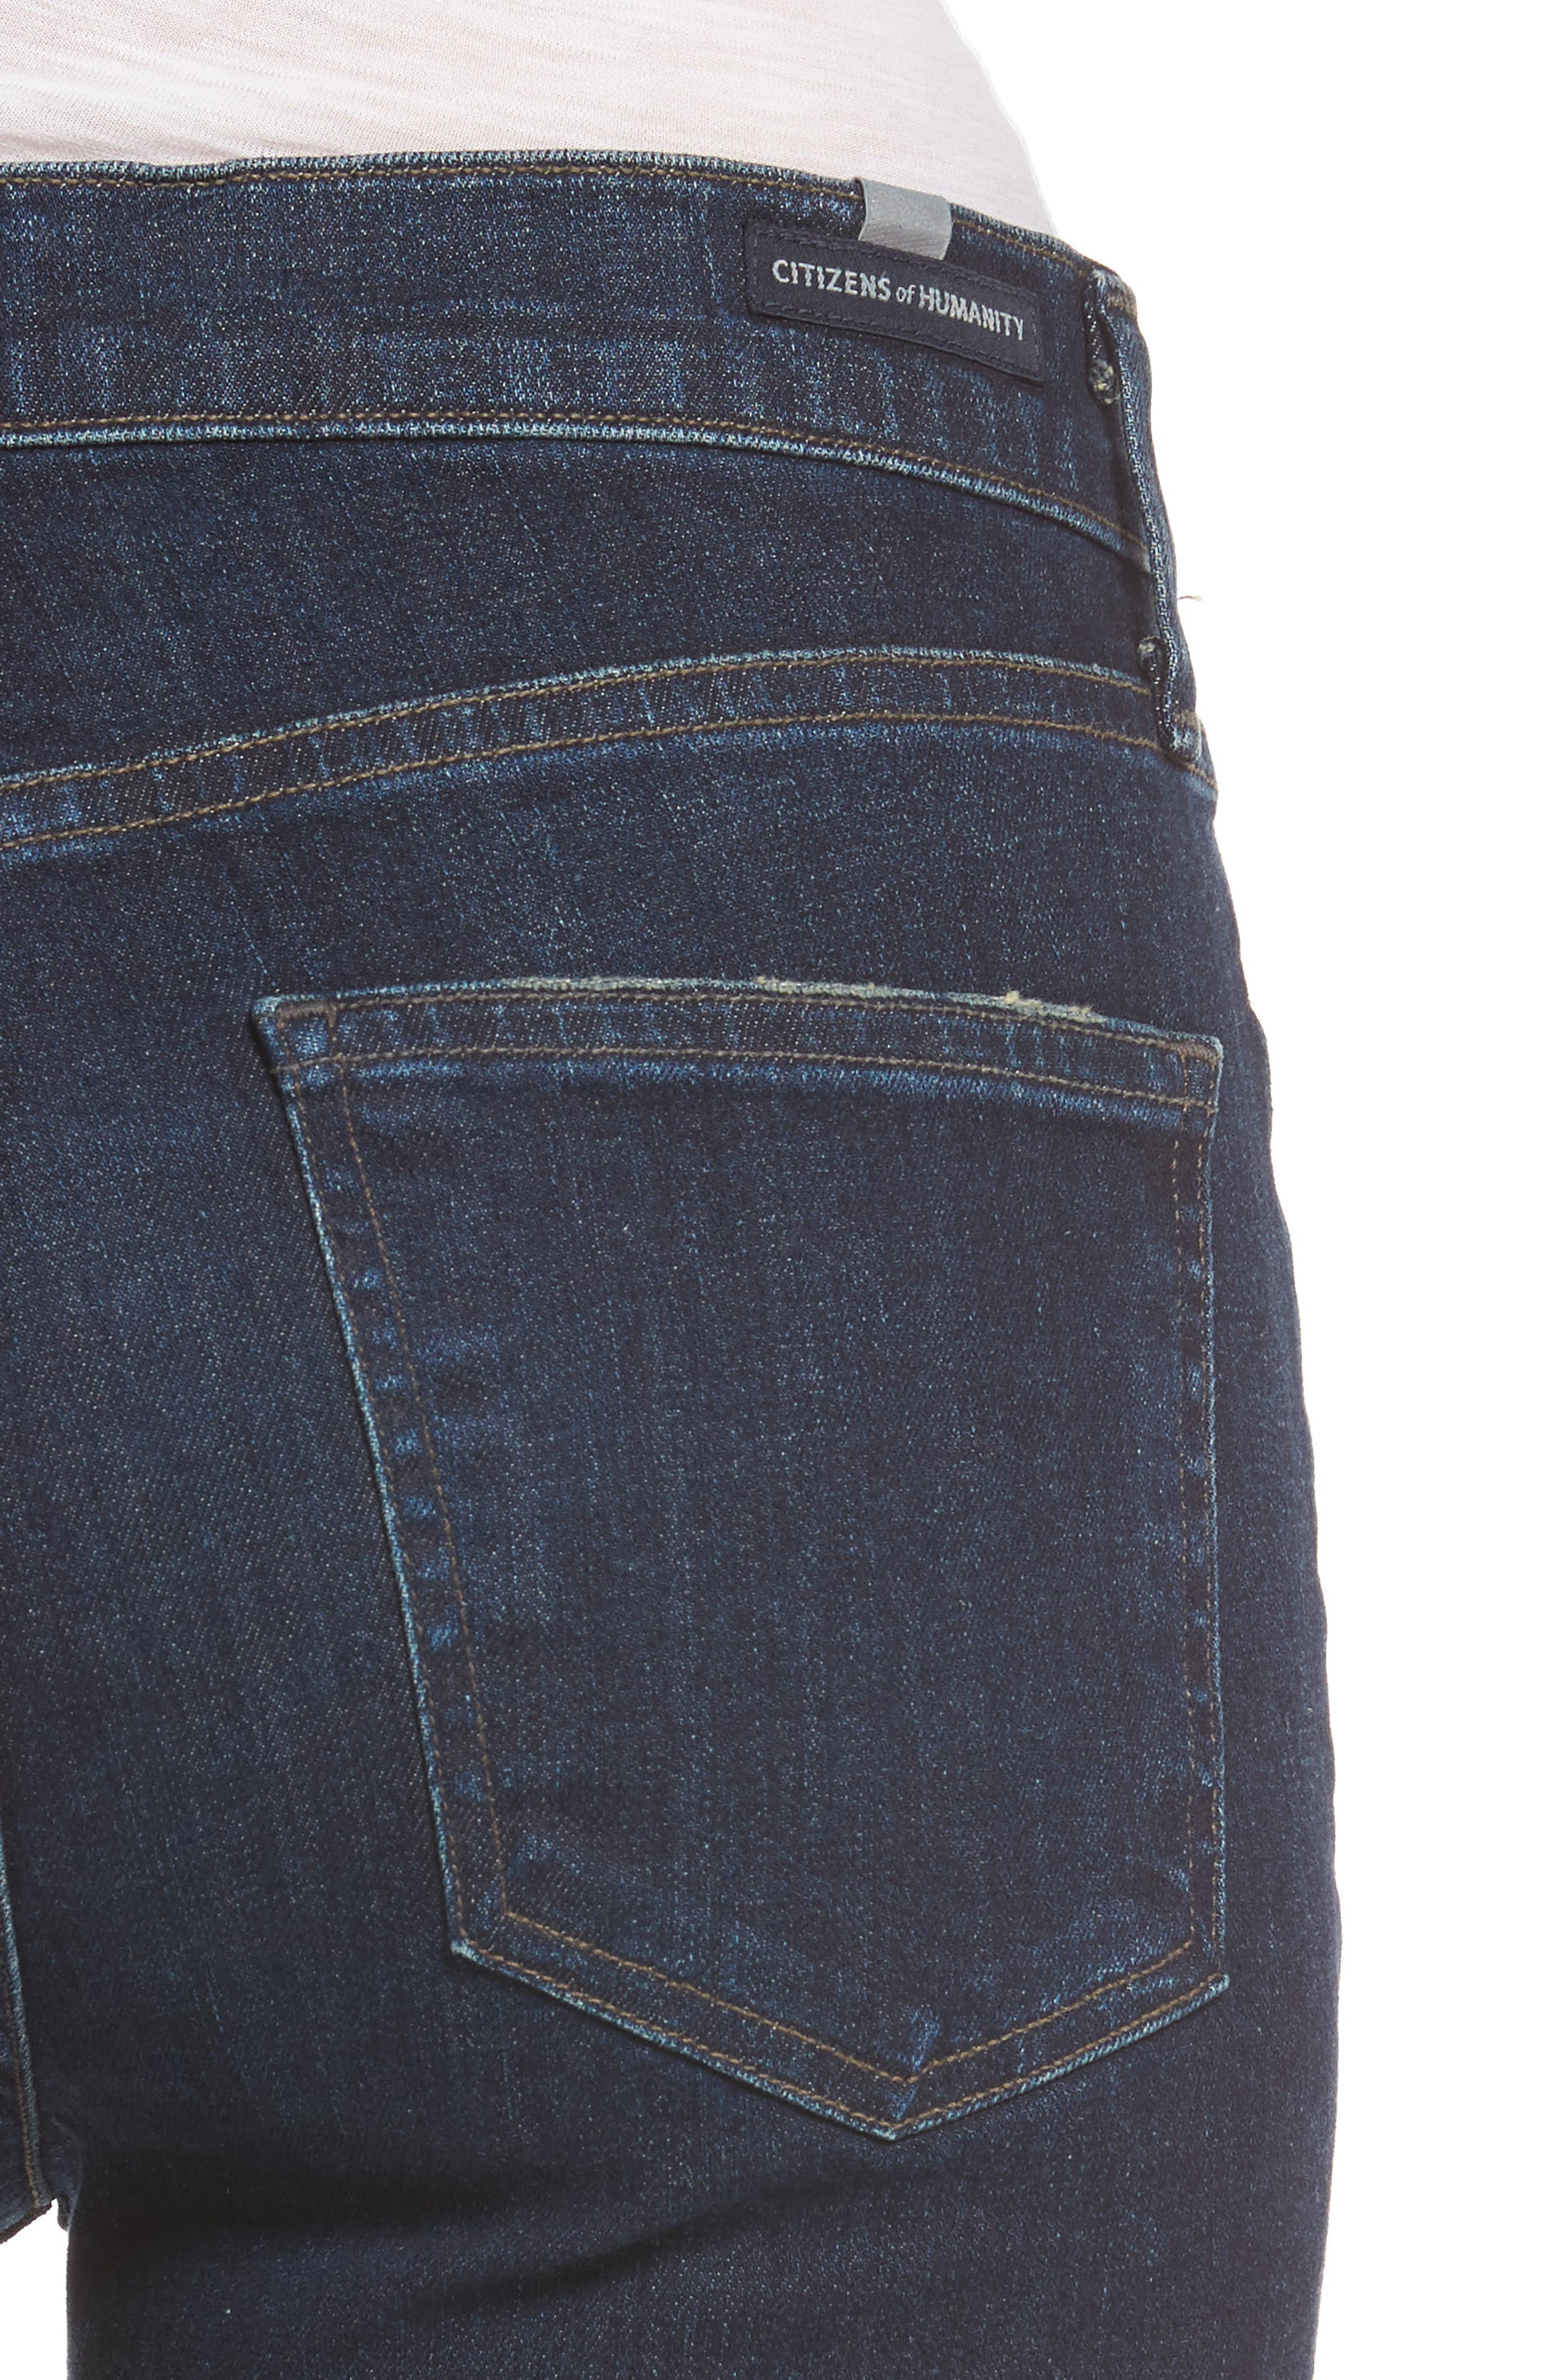 Alternate Image 4  - Citizens of Humanity Cara Ankle Cigarette Jeans (Maya)